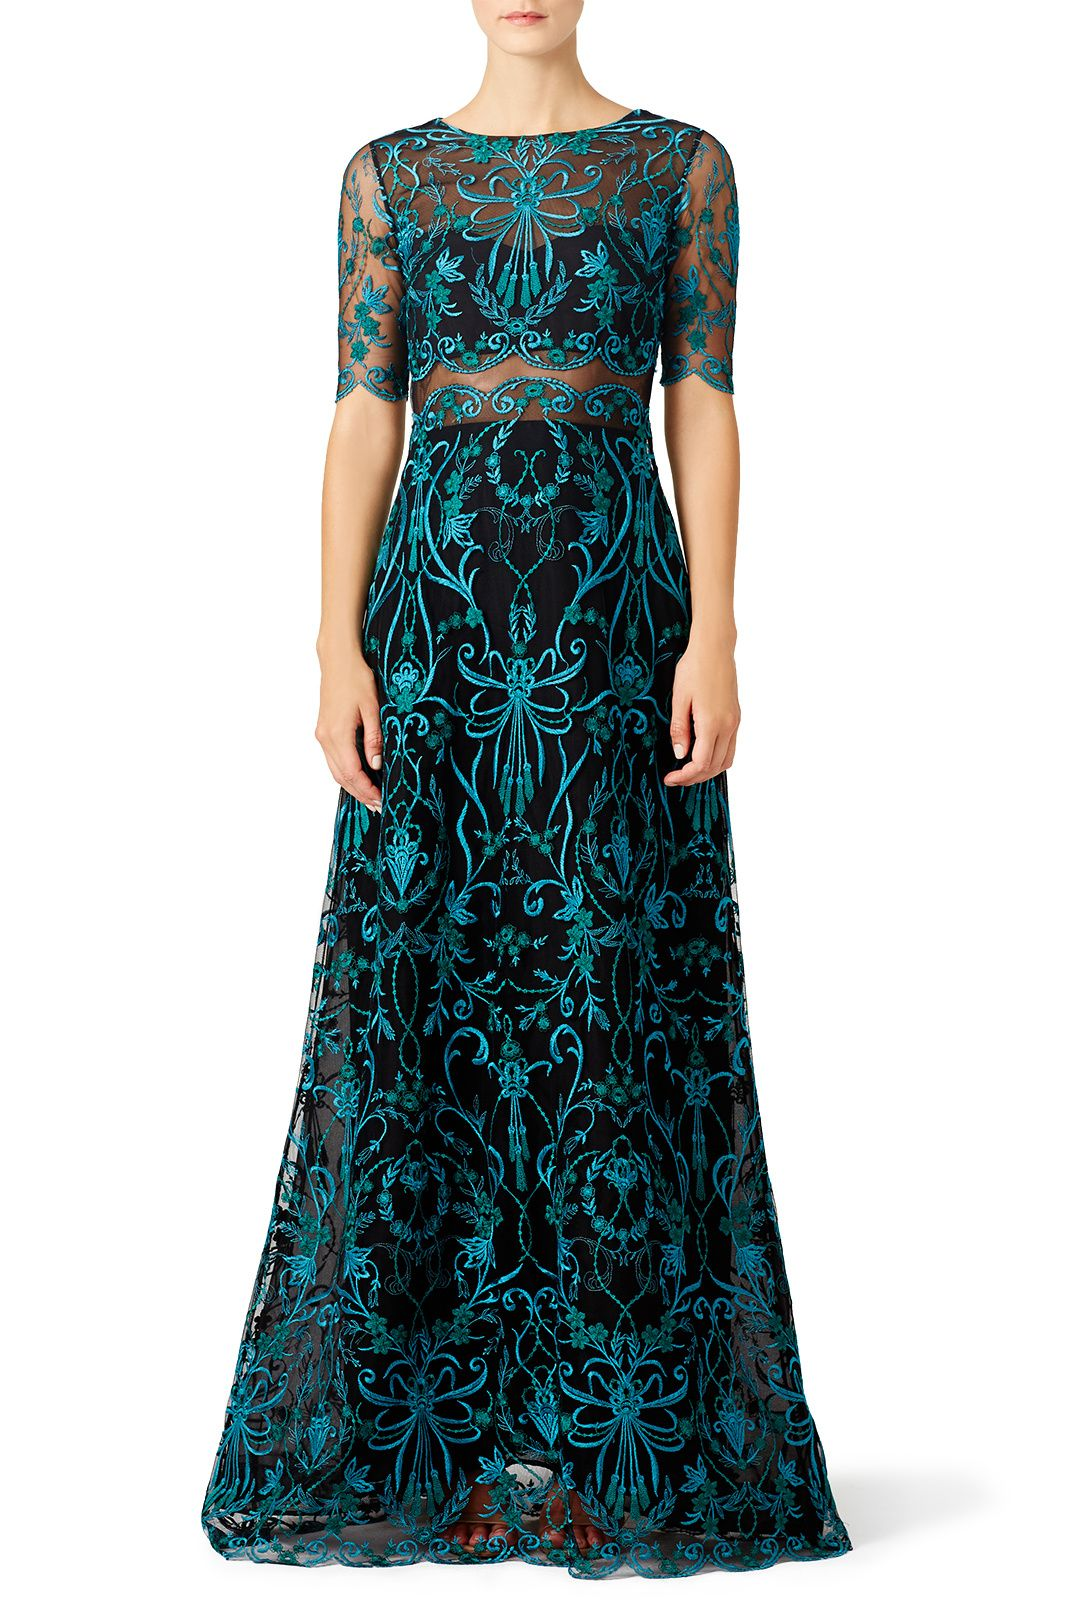 2a5df36c Marchesa Notte Teal Elizabeth Gown (I have unlimited and this bad boy is  already at my home, so it's happening!)